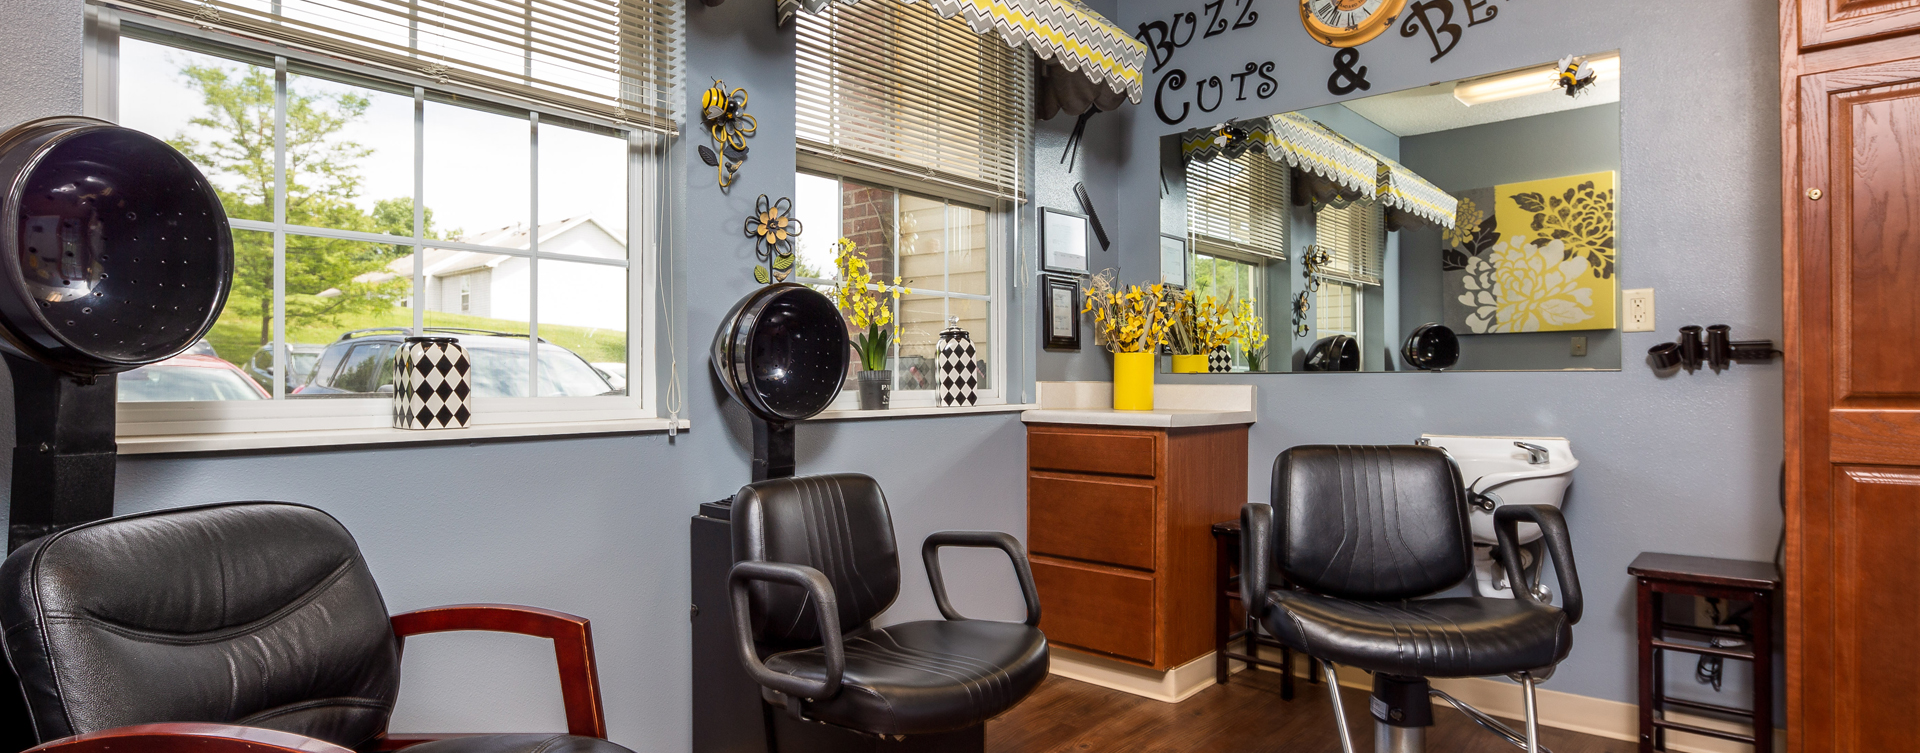 Receive personalized, at-home treatment from our stylist in the salon at Bickford of Battle Creek